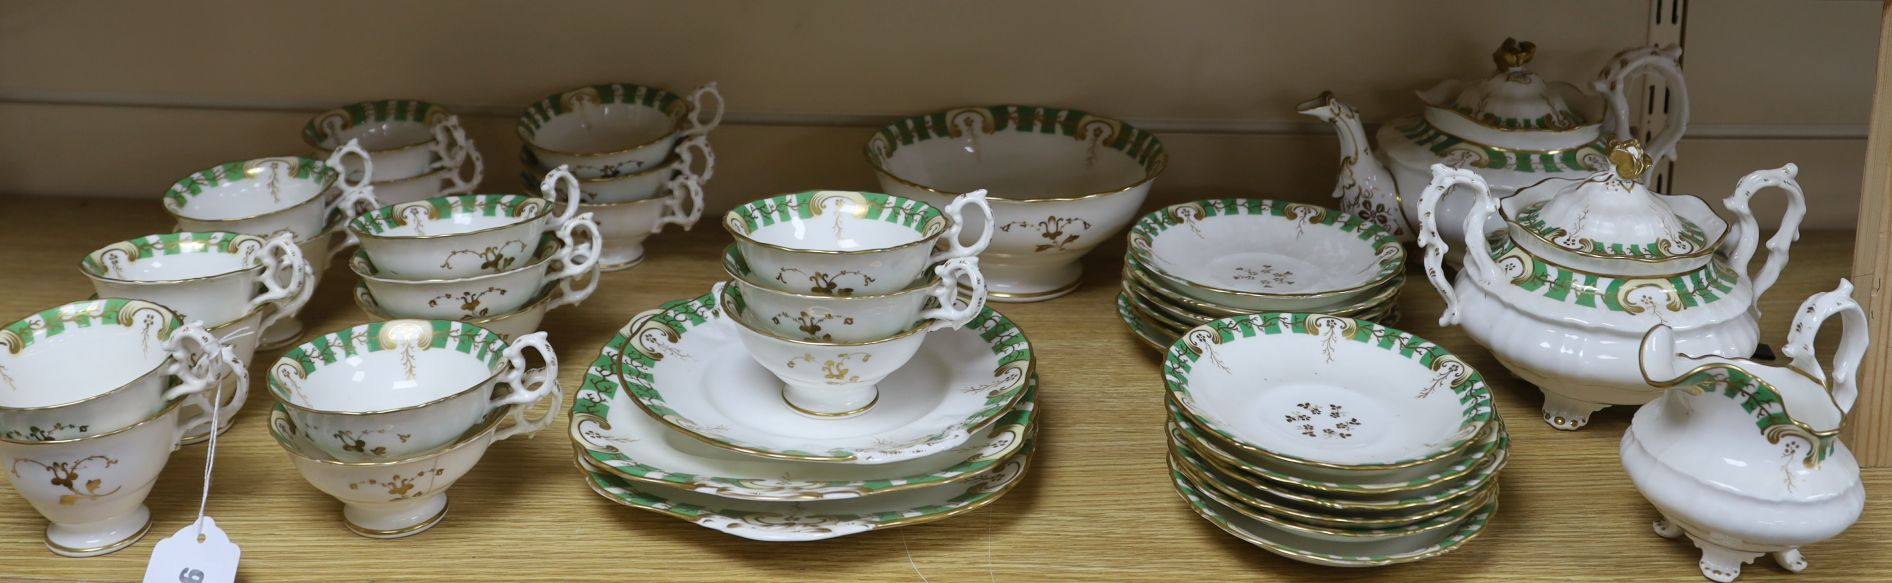 Lot 1216 - A 19th century Staffordshire gilt and green decorated teaset